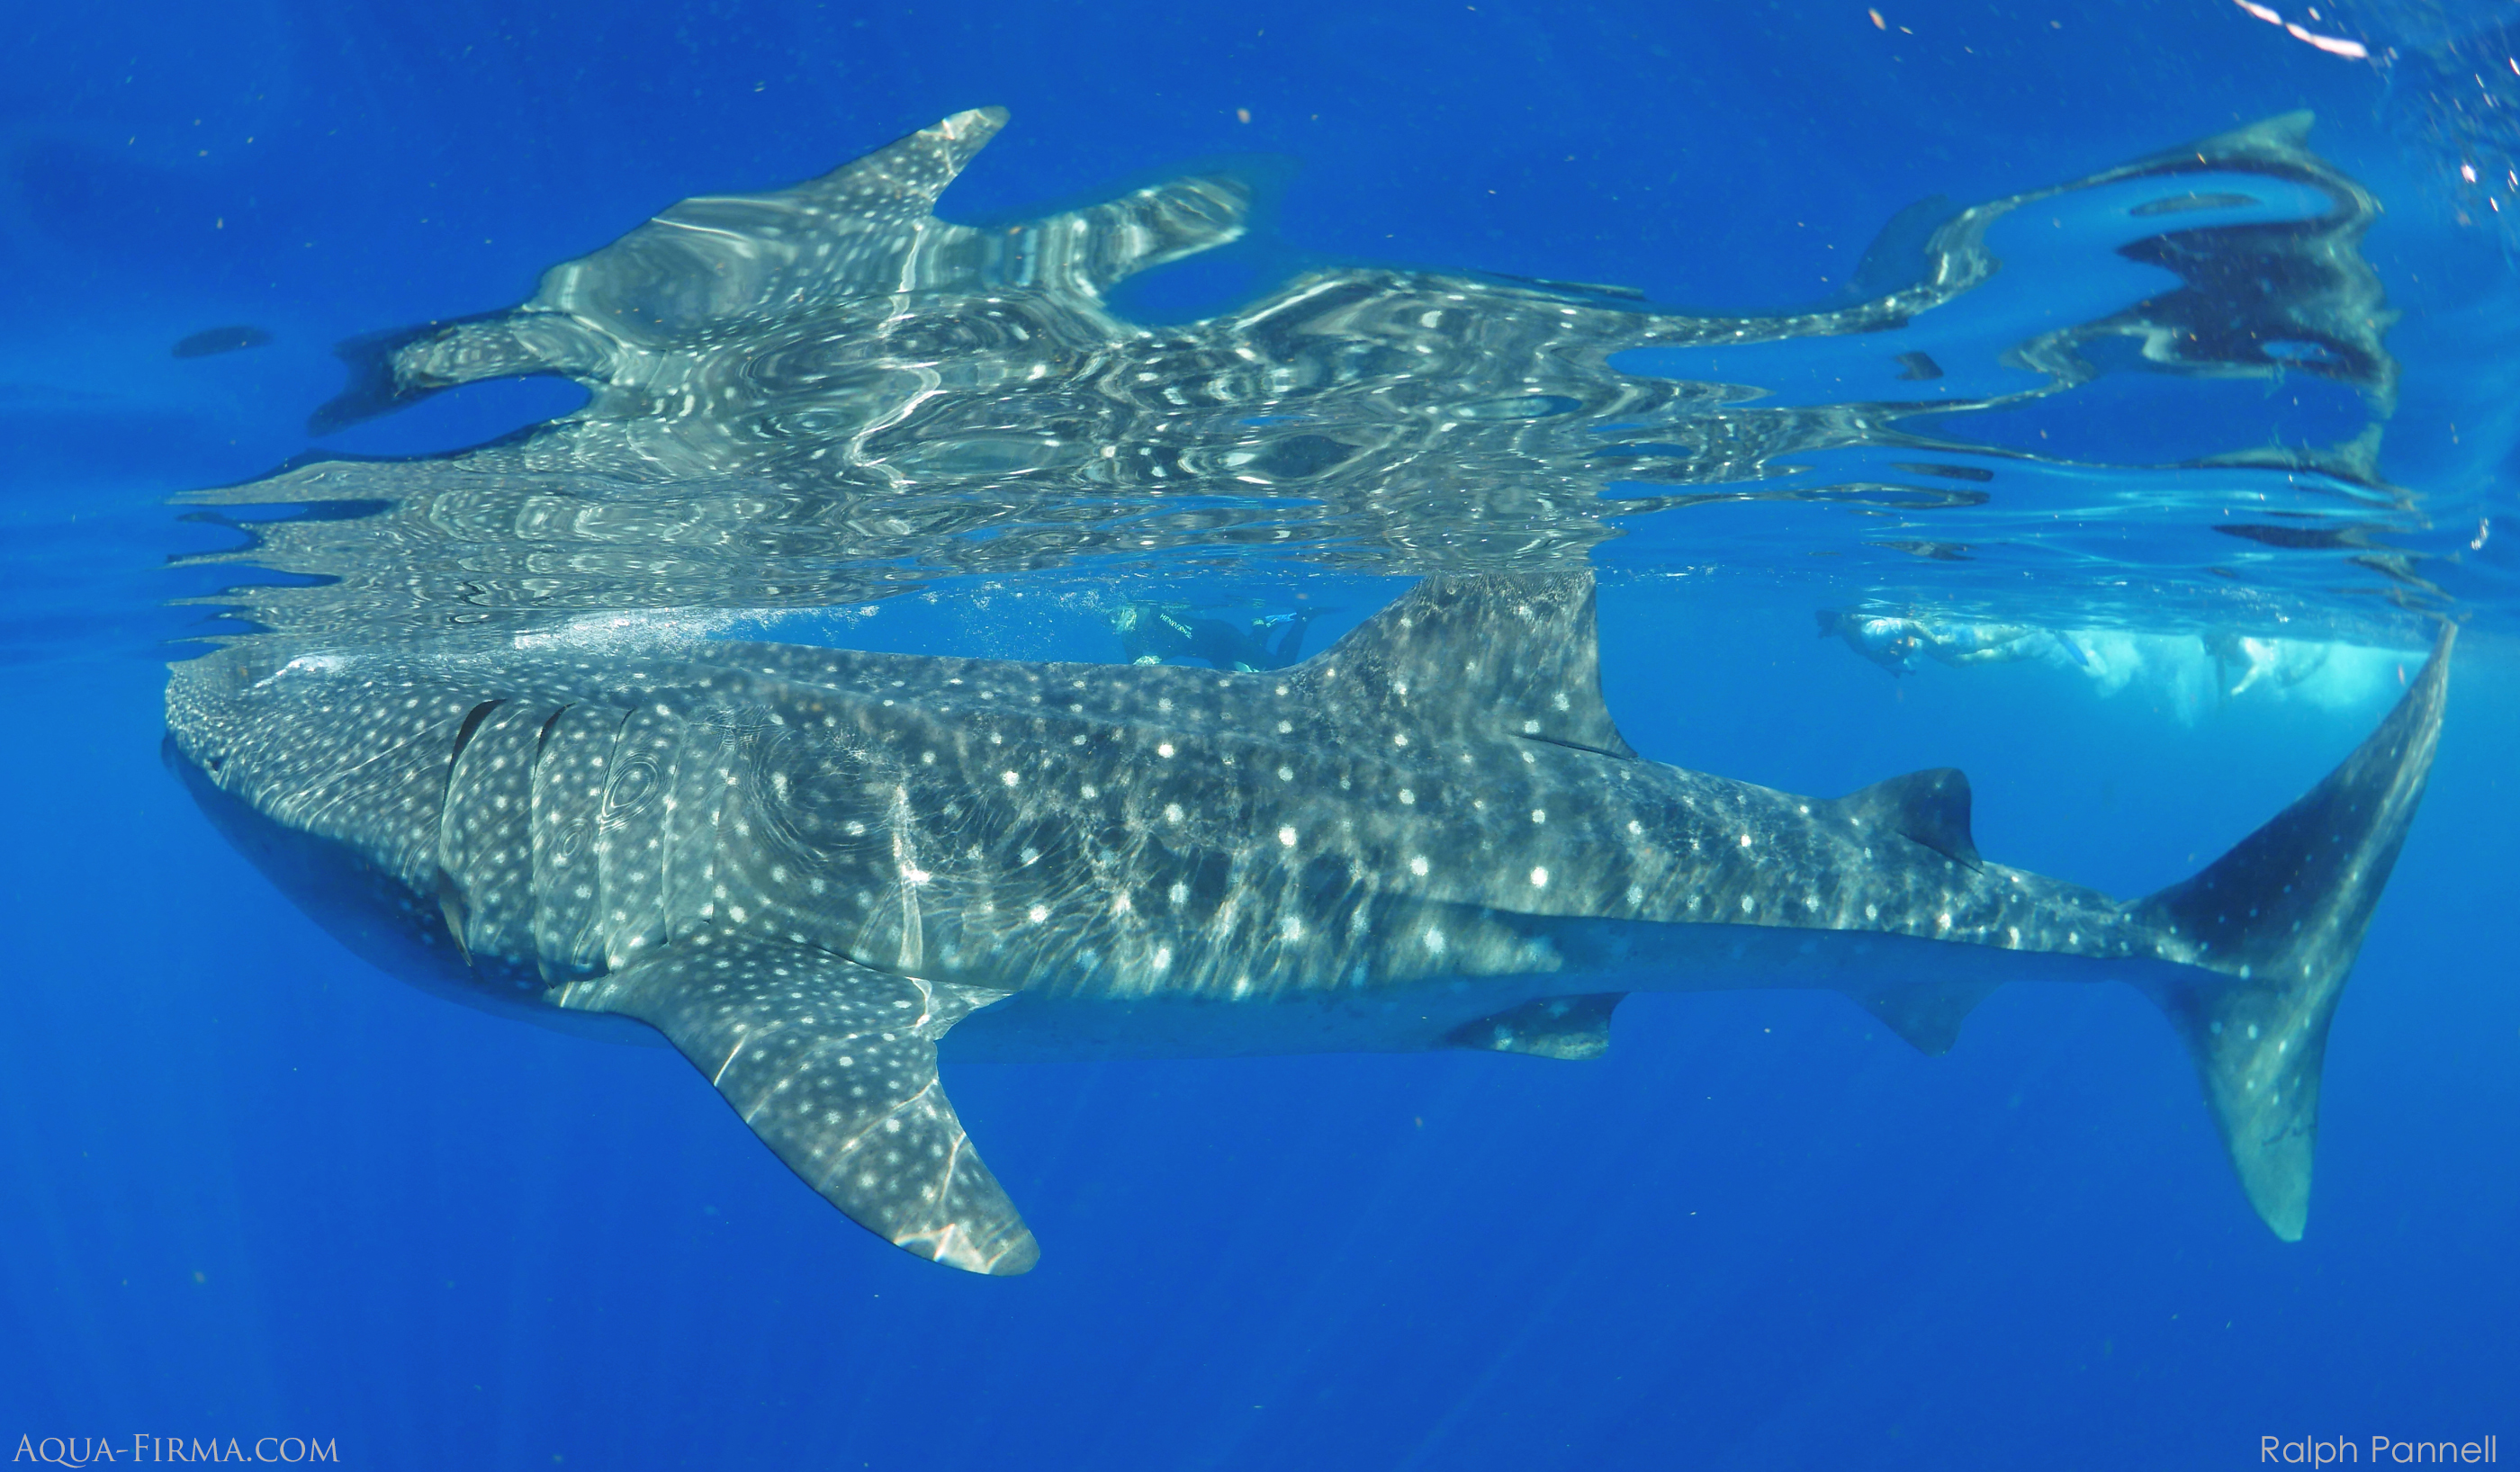 Swim Snorkel Dive  with Whale Shark Mexico Isla Mujeres Cancun afuera